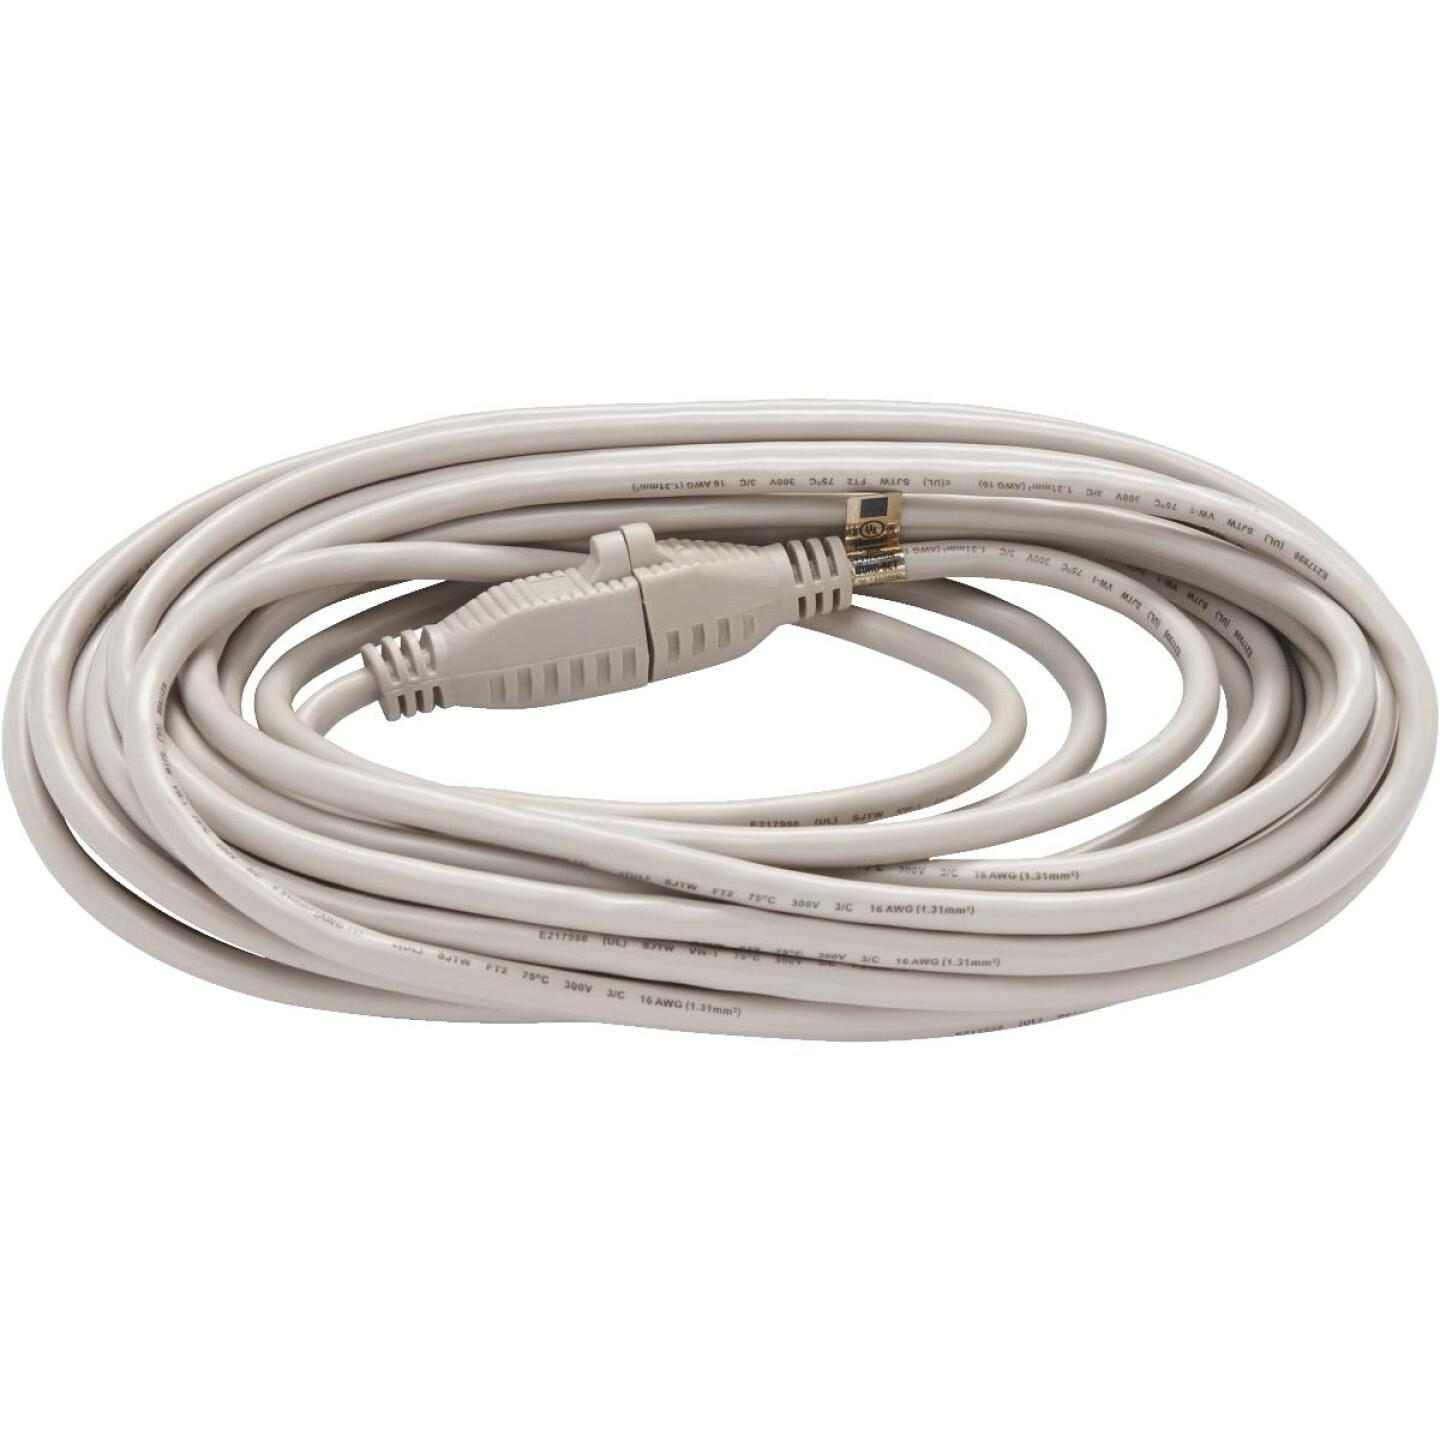 Do it Best 40 Ft. 16/3 Medium-Duty Tan Deck Extension Cord Image 2